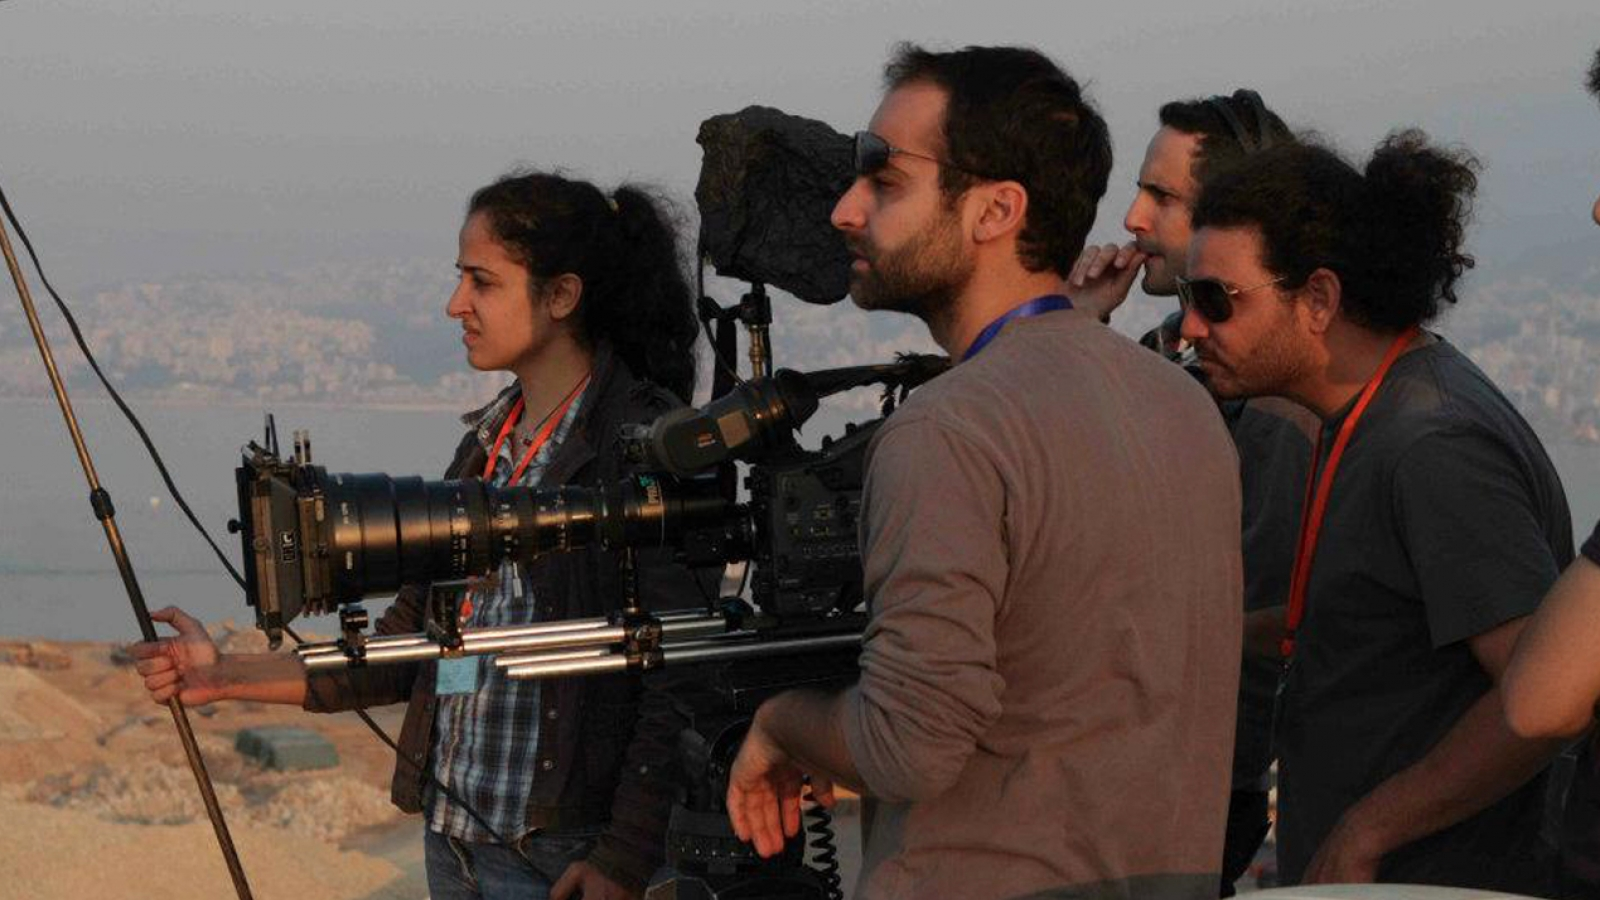 The SouthMedWiA project aims to promote gender equality in audiovisual